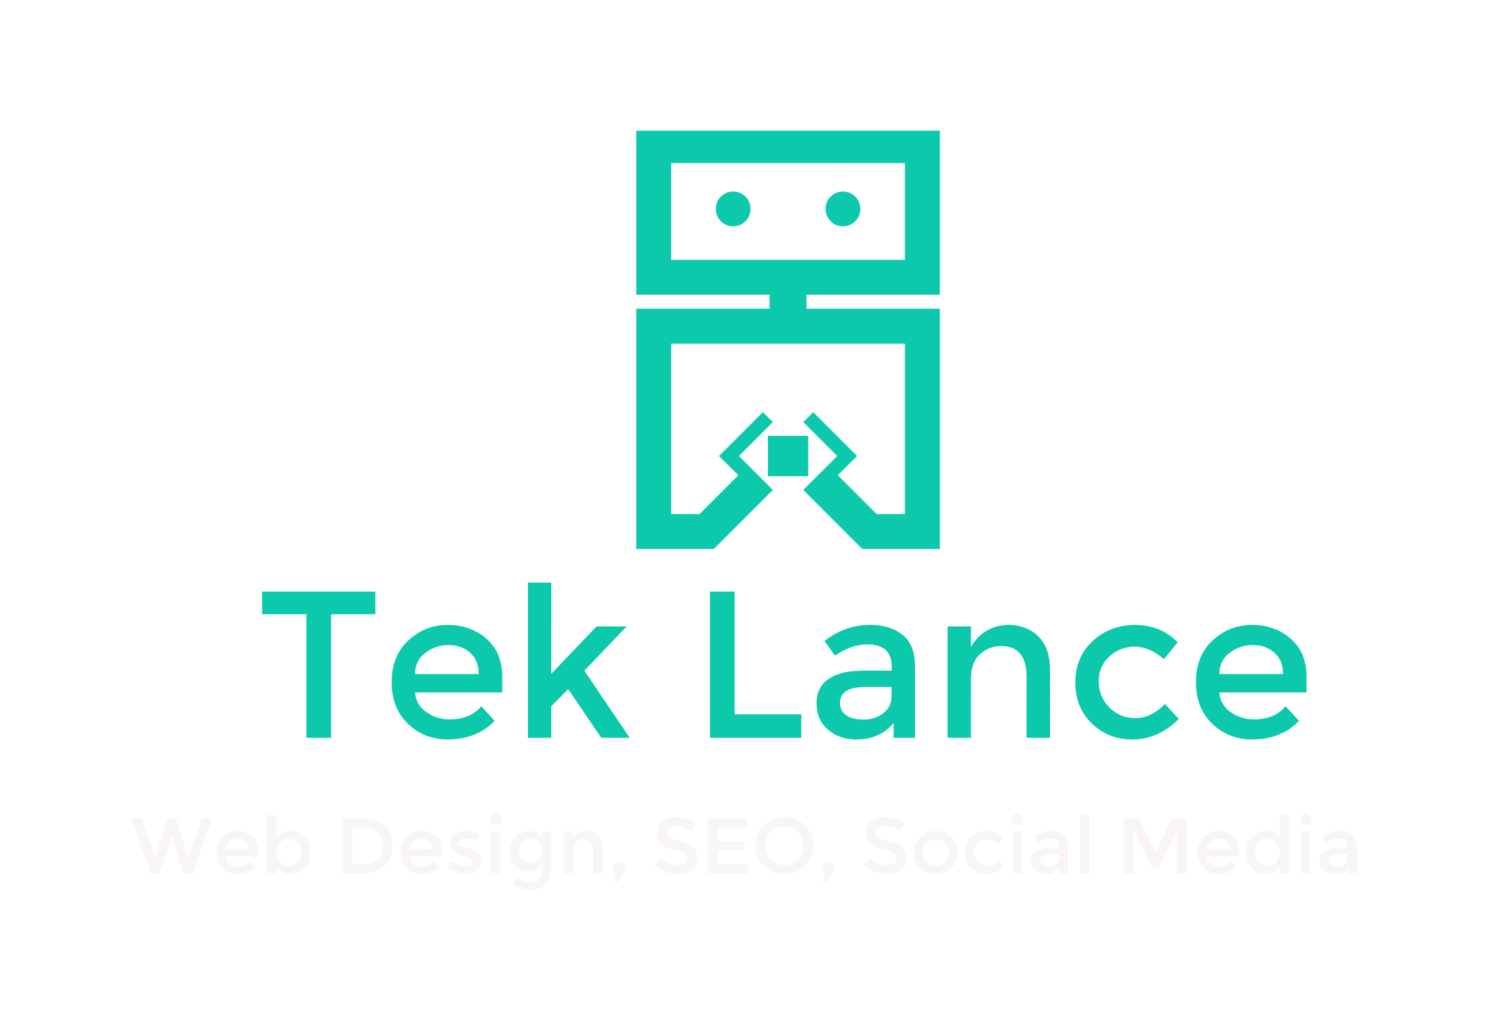 Tek Lance - Website Design, Social Media, SEO/SEM Consultant